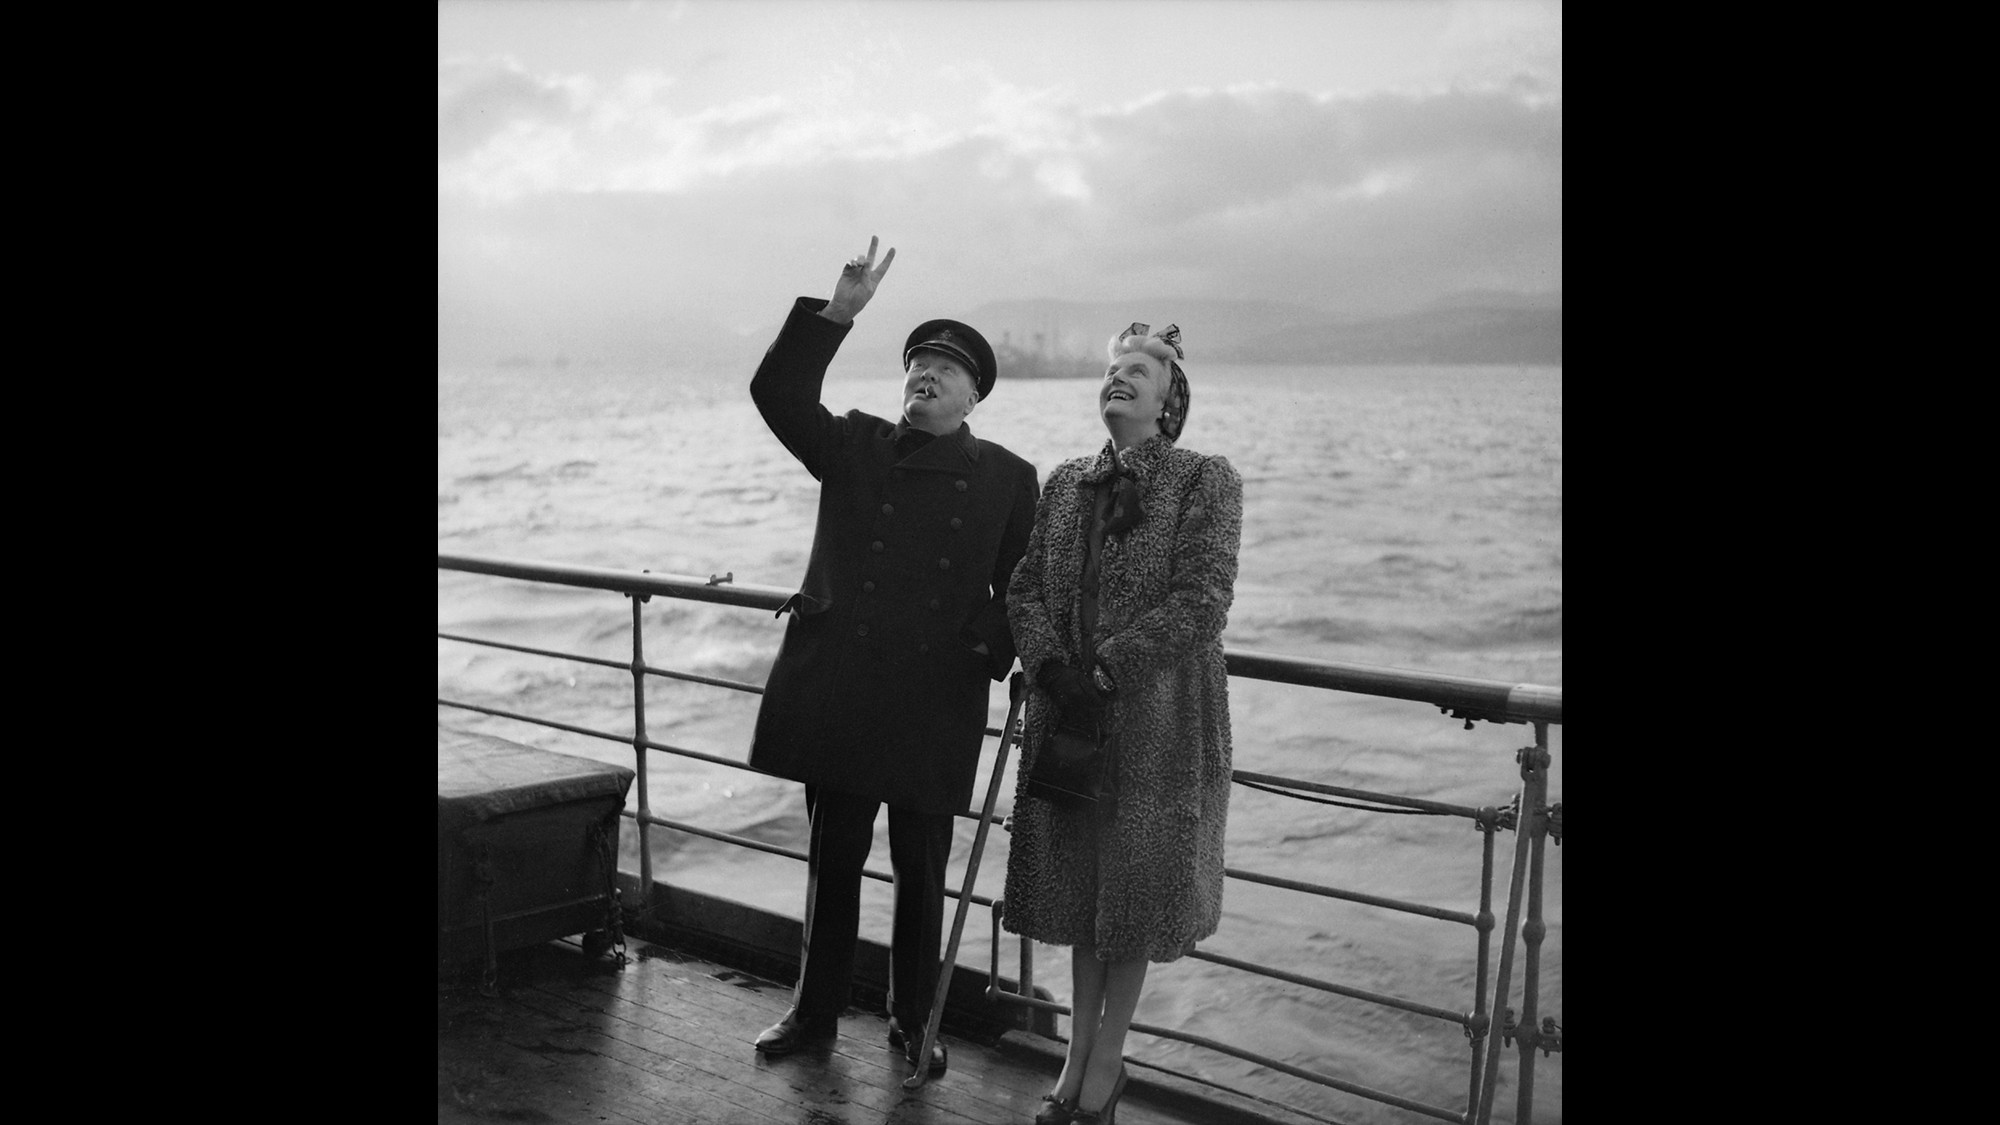 winston churchill s paintings star in an exhibit on the queen mary winston churchill s paintings star in an exhibit on the queen mary la times